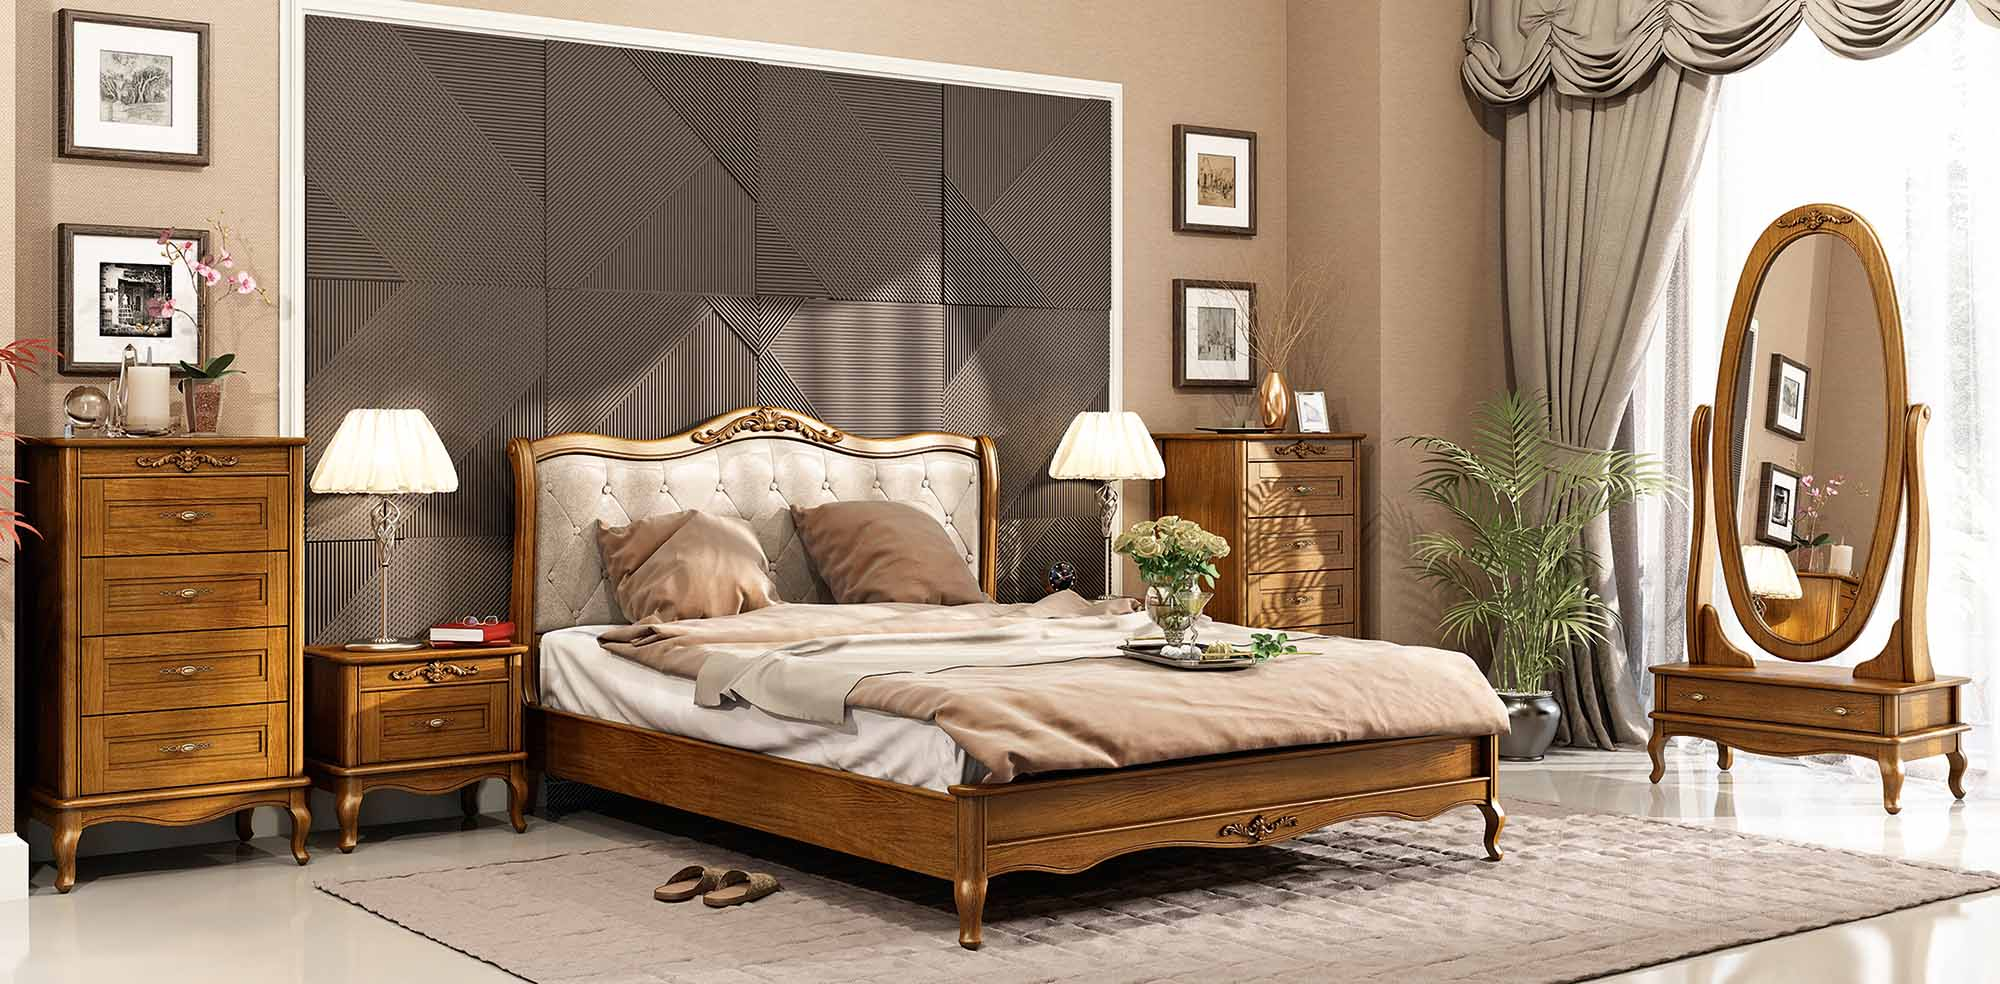 palermo_bedroom_3